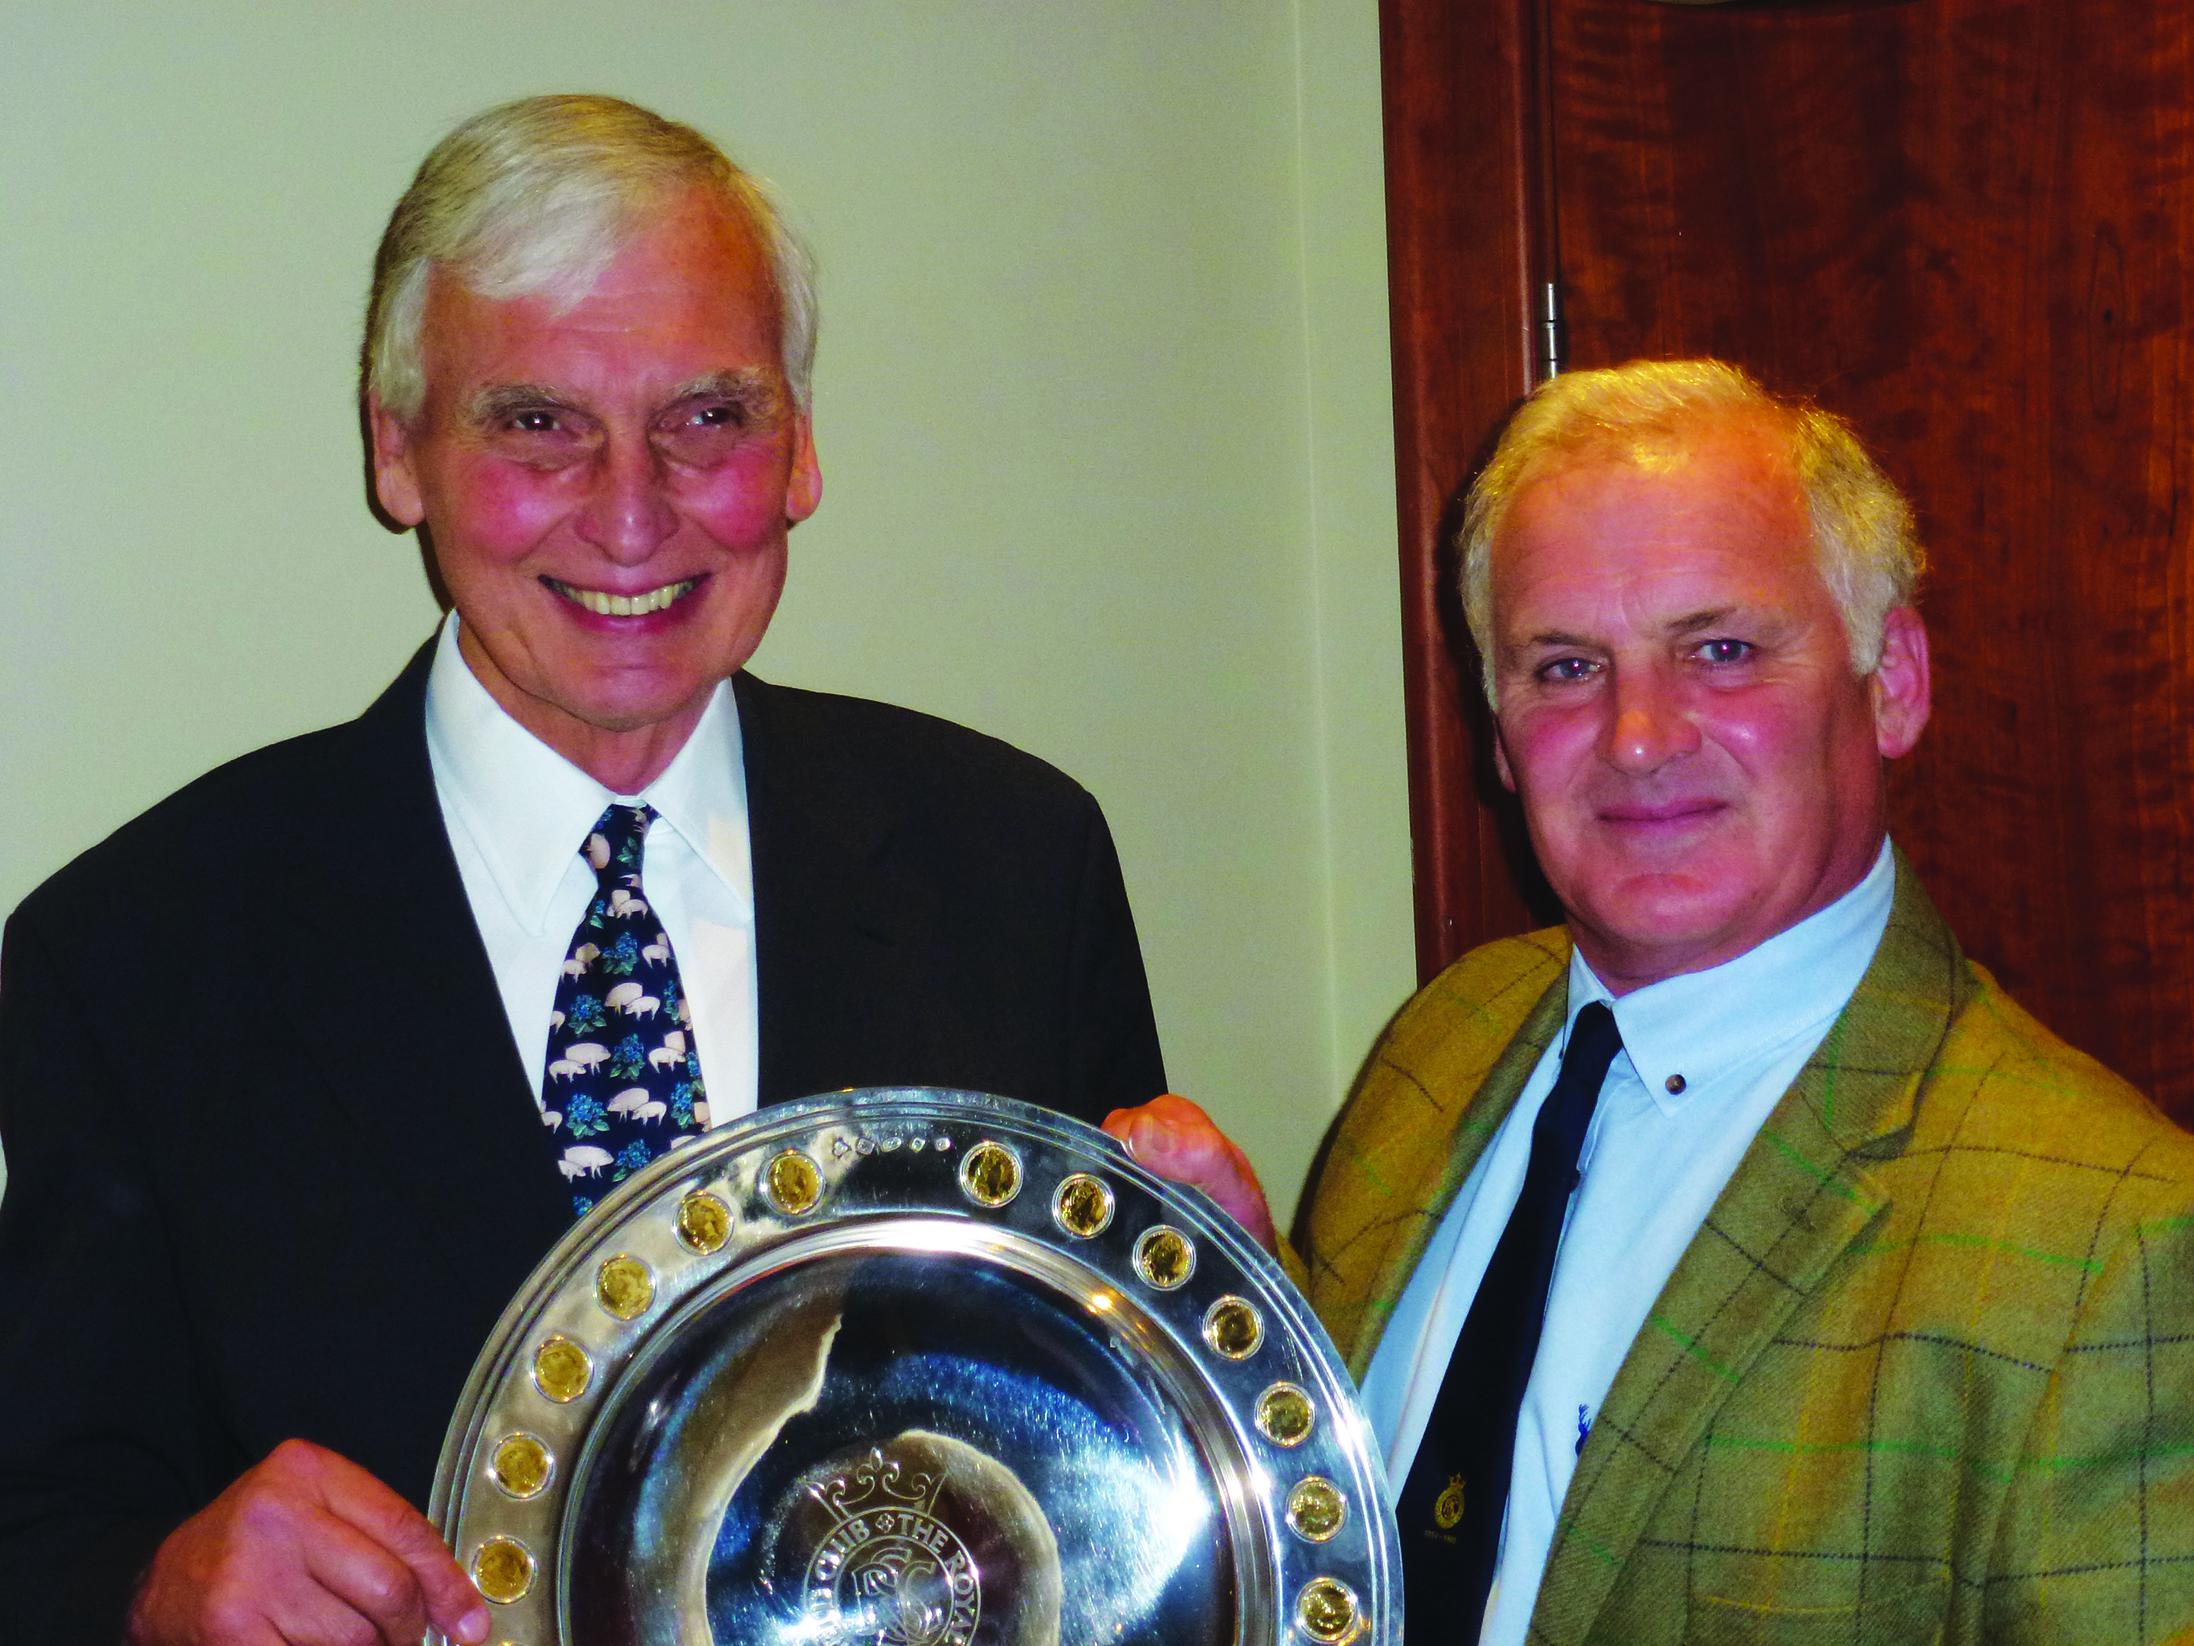 2017 Bicentenary Trophy winner Robert Forster receiving the award from Club Trustee Julian Hopwood